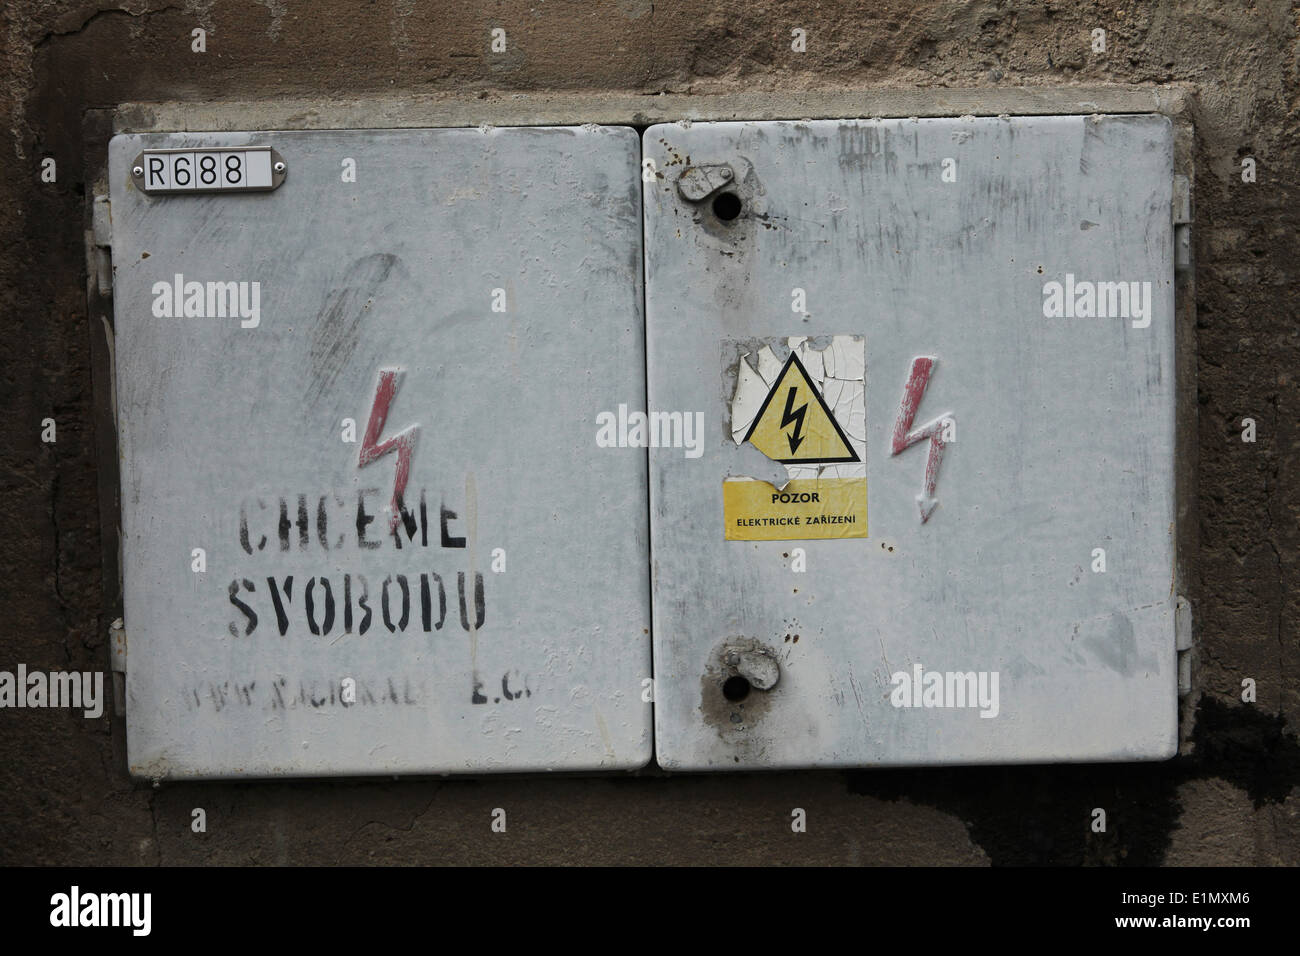 High voltage sign stock photos high voltage sign stock images alamy electric box with a high voltage sign and graffiti in czech we want freedom buycottarizona Images